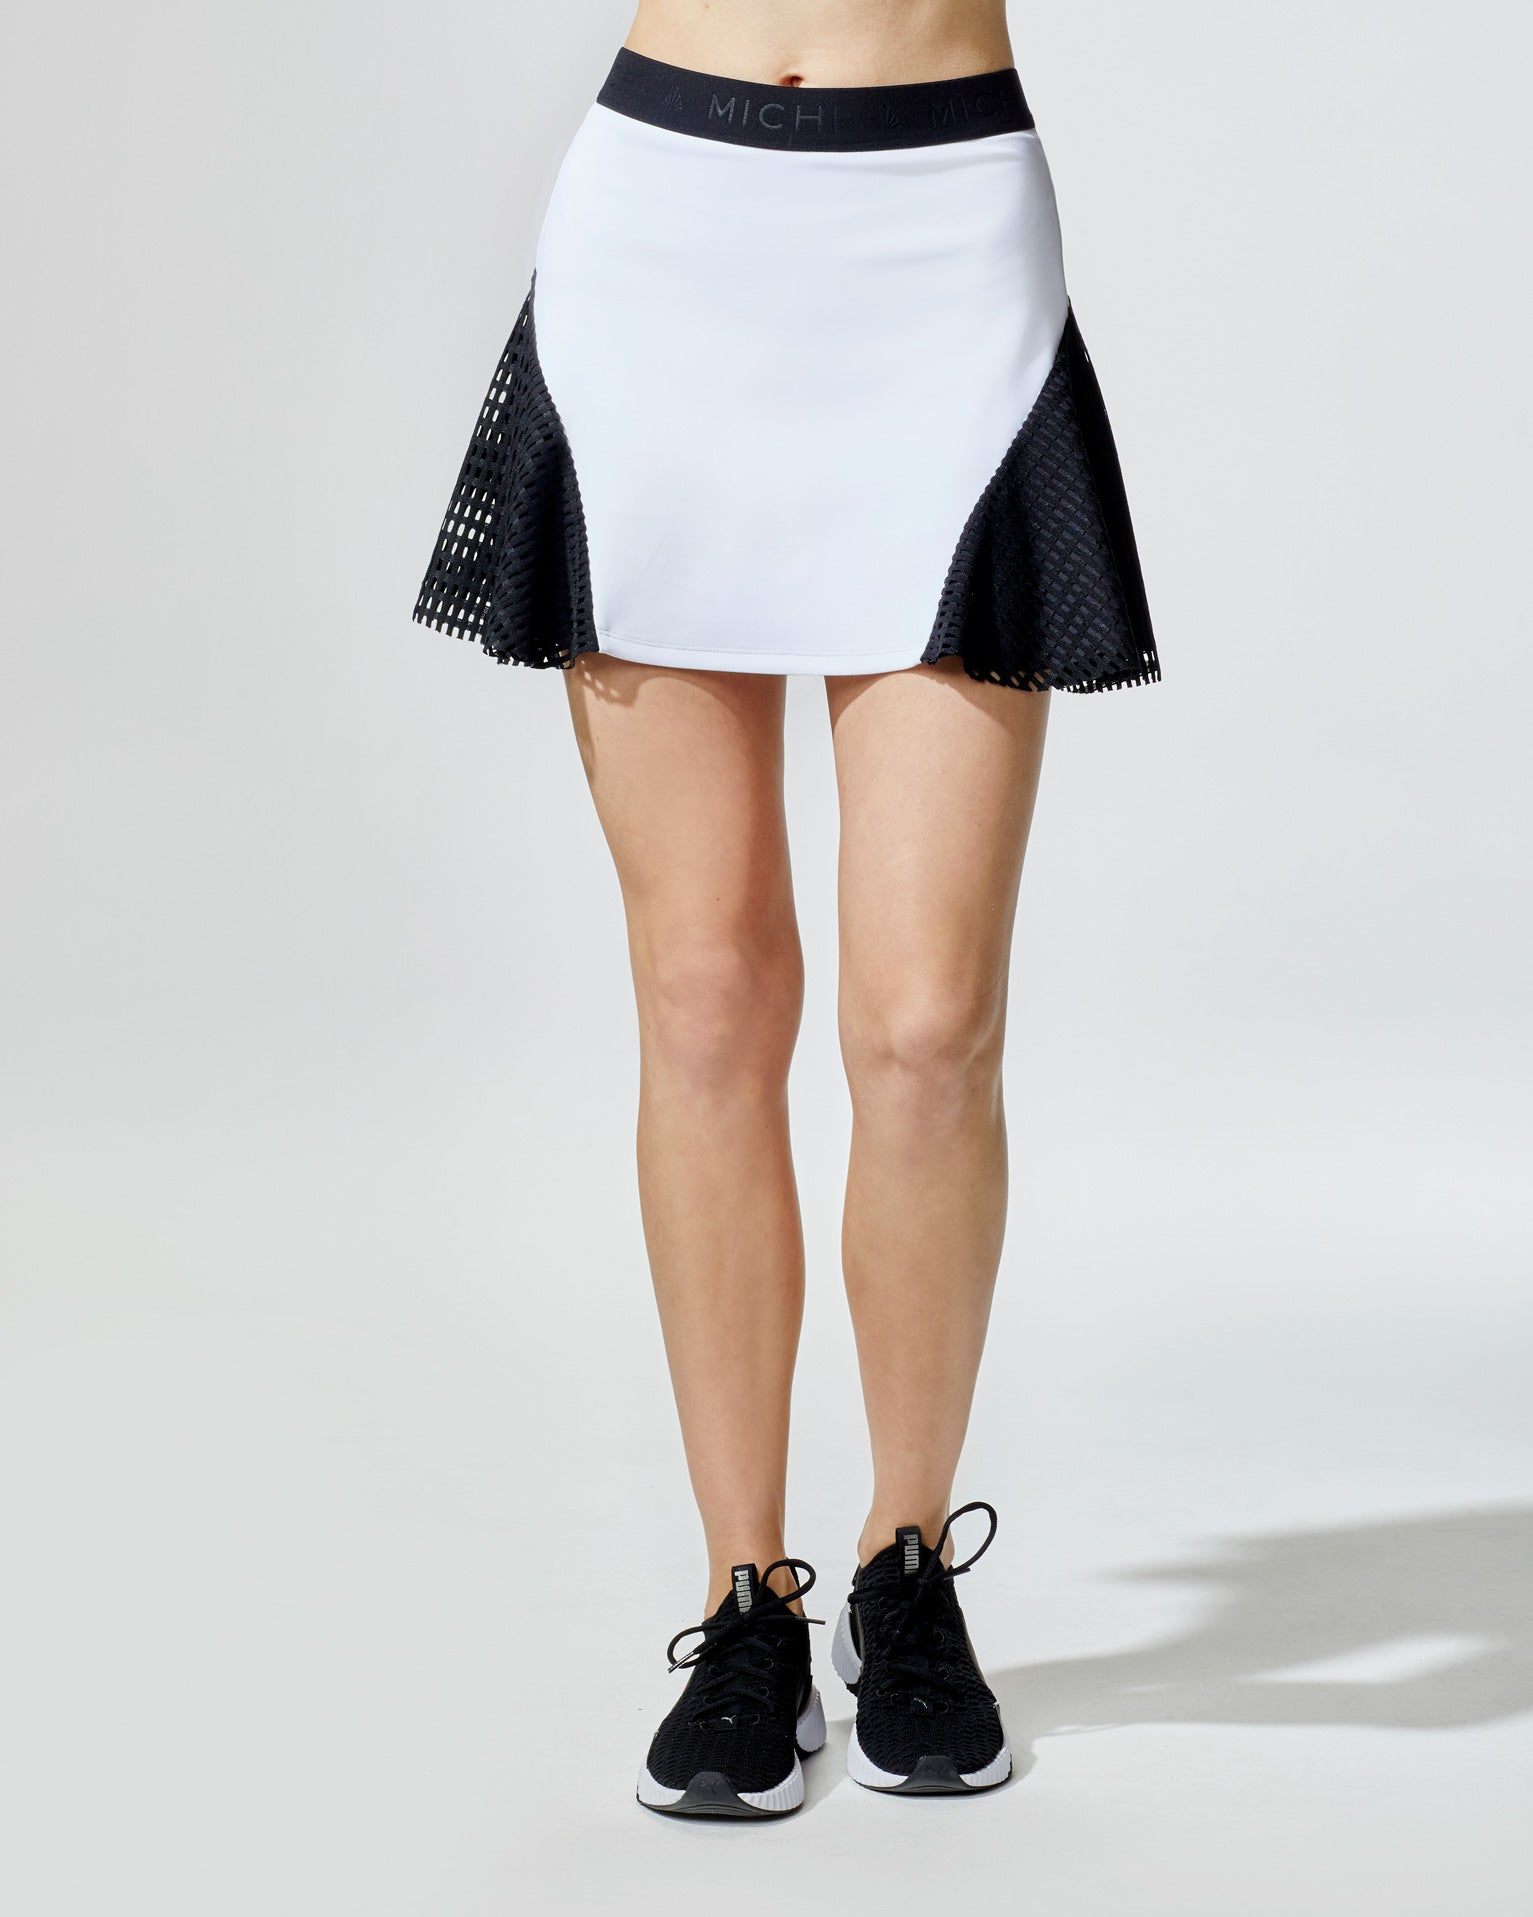 match-skirt-white-black-square-mesh